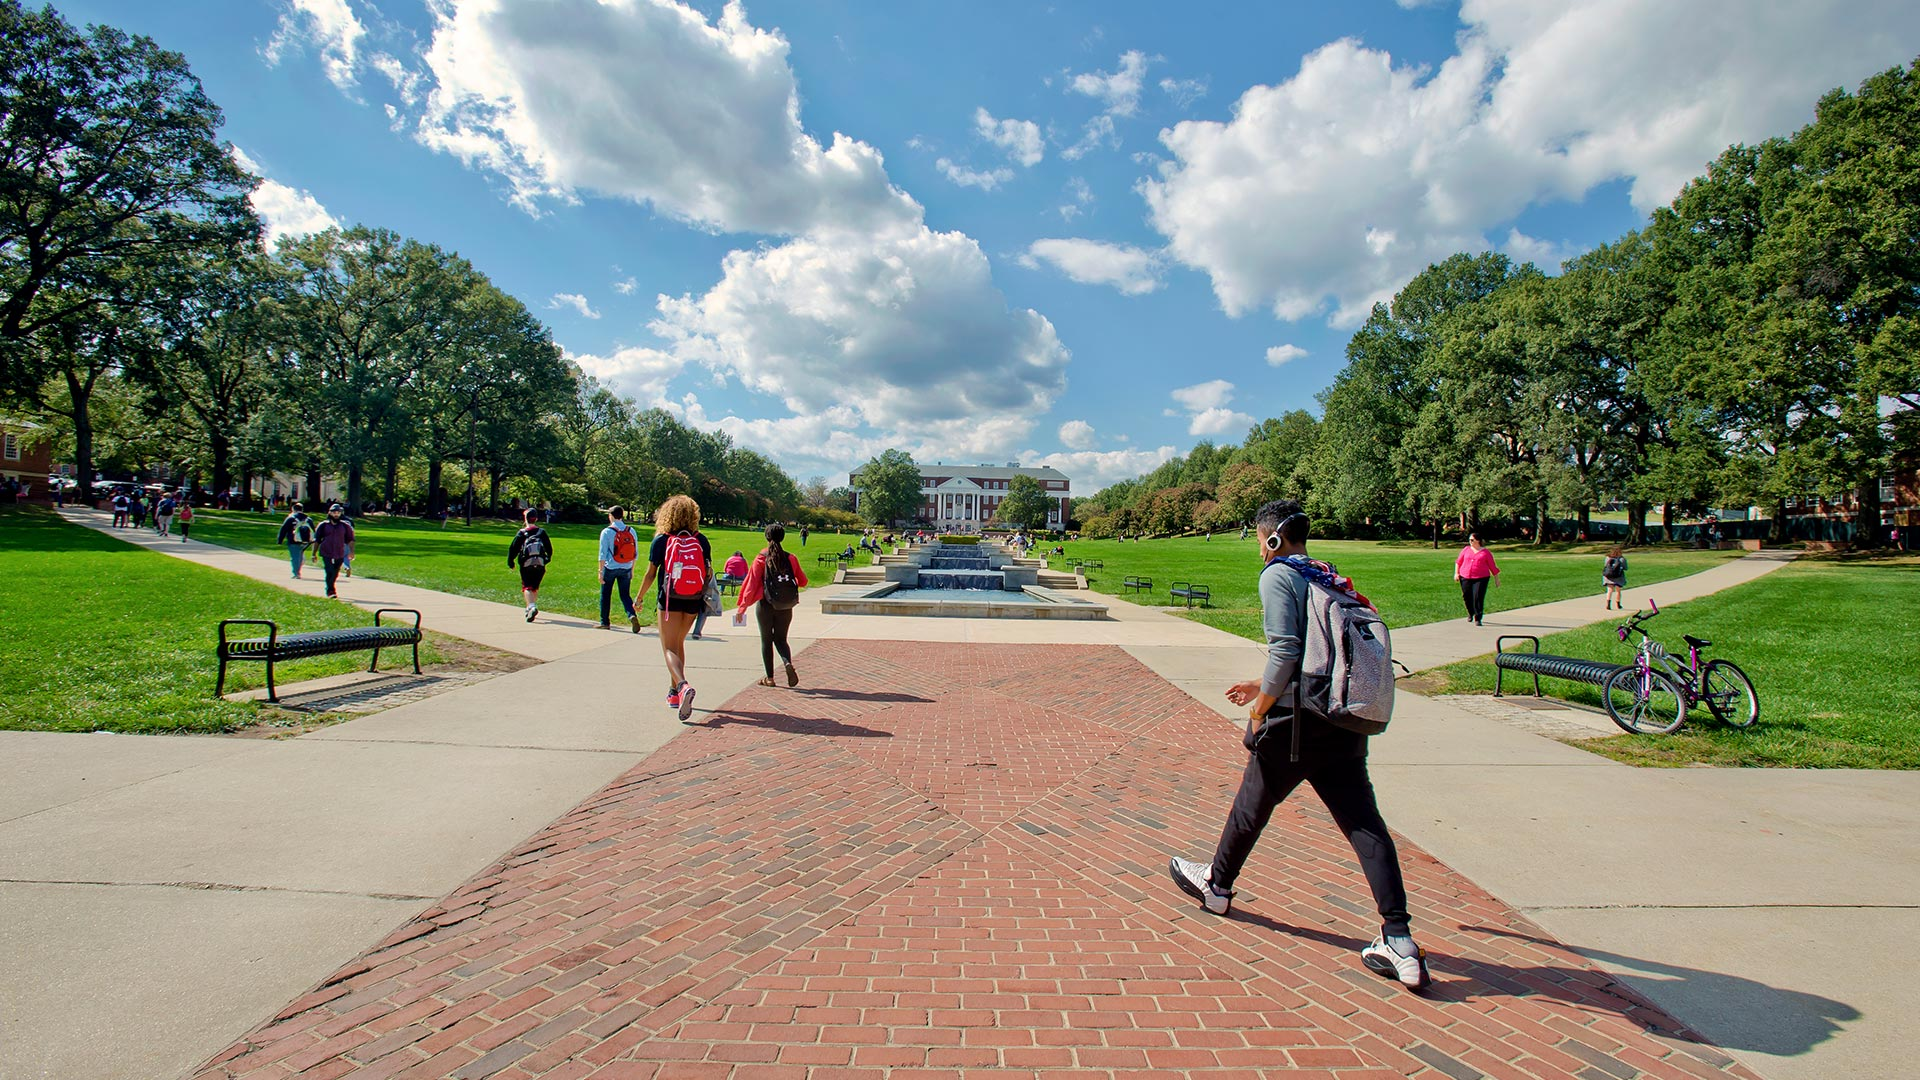 UMD's Progress in Creating an Inclusive, Safe and Welcoming Campus